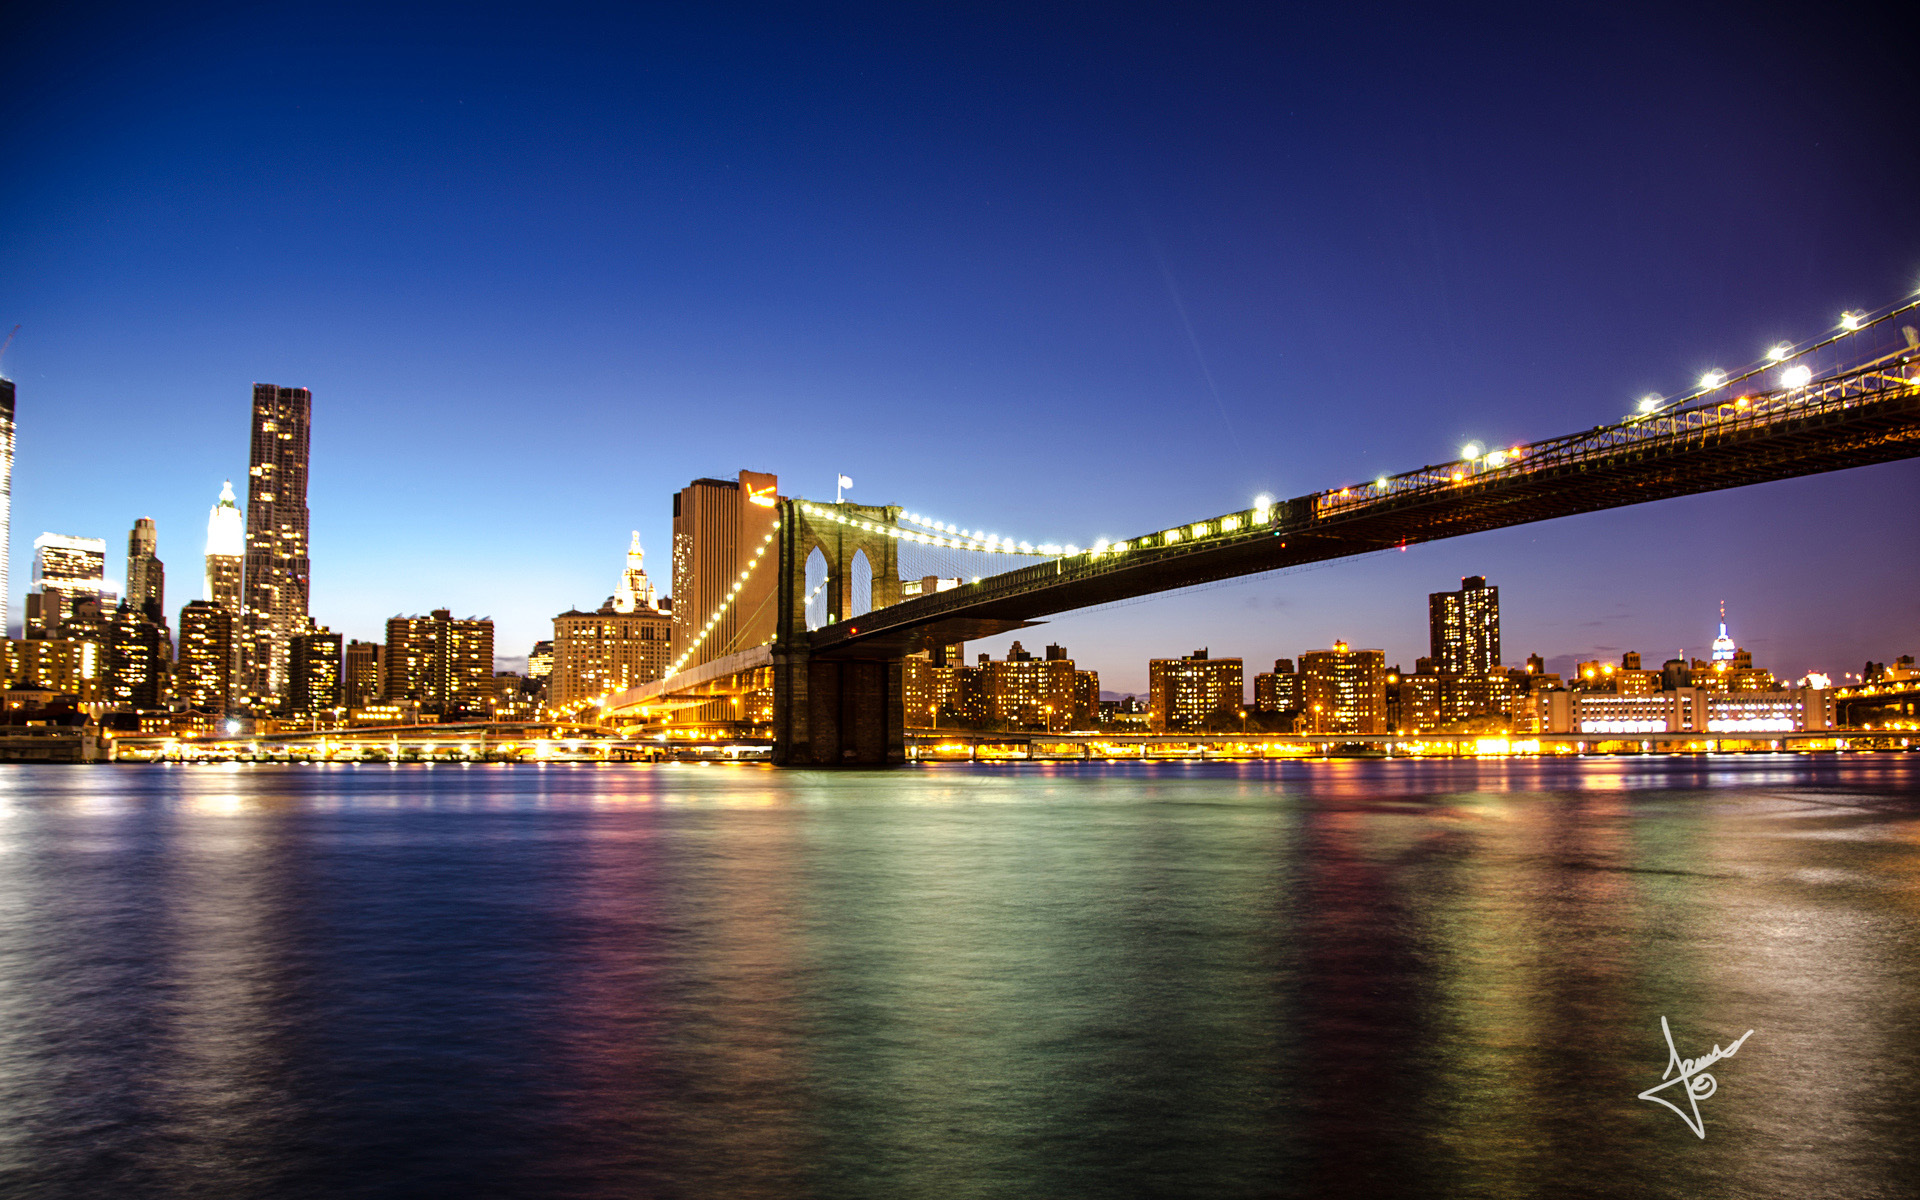 Brooklyn Bridge New York Hd Wallpaper